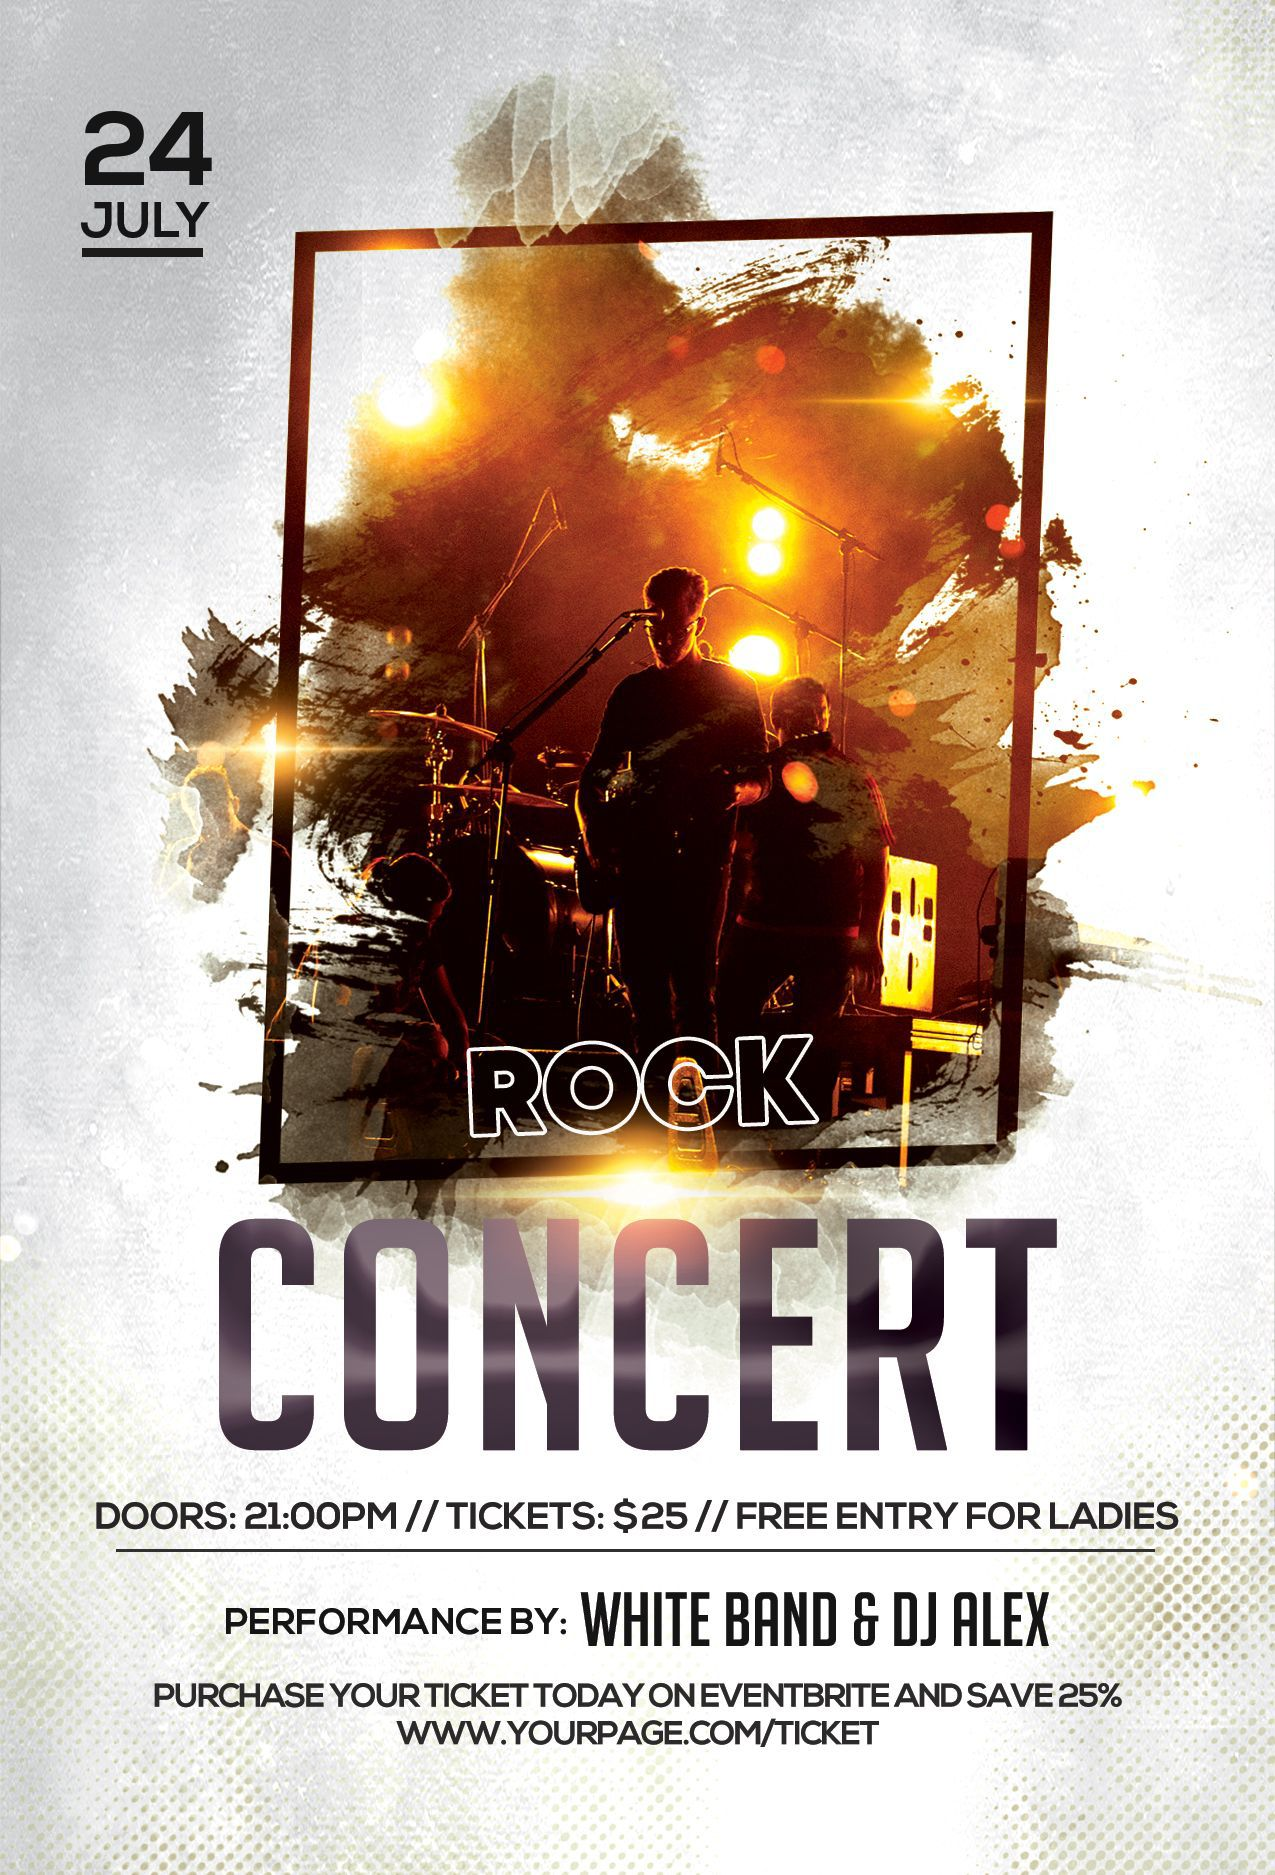 004 Amazing Free Concert Poster Template Highest Quality  Rock Psd Christma PhotoshopFull